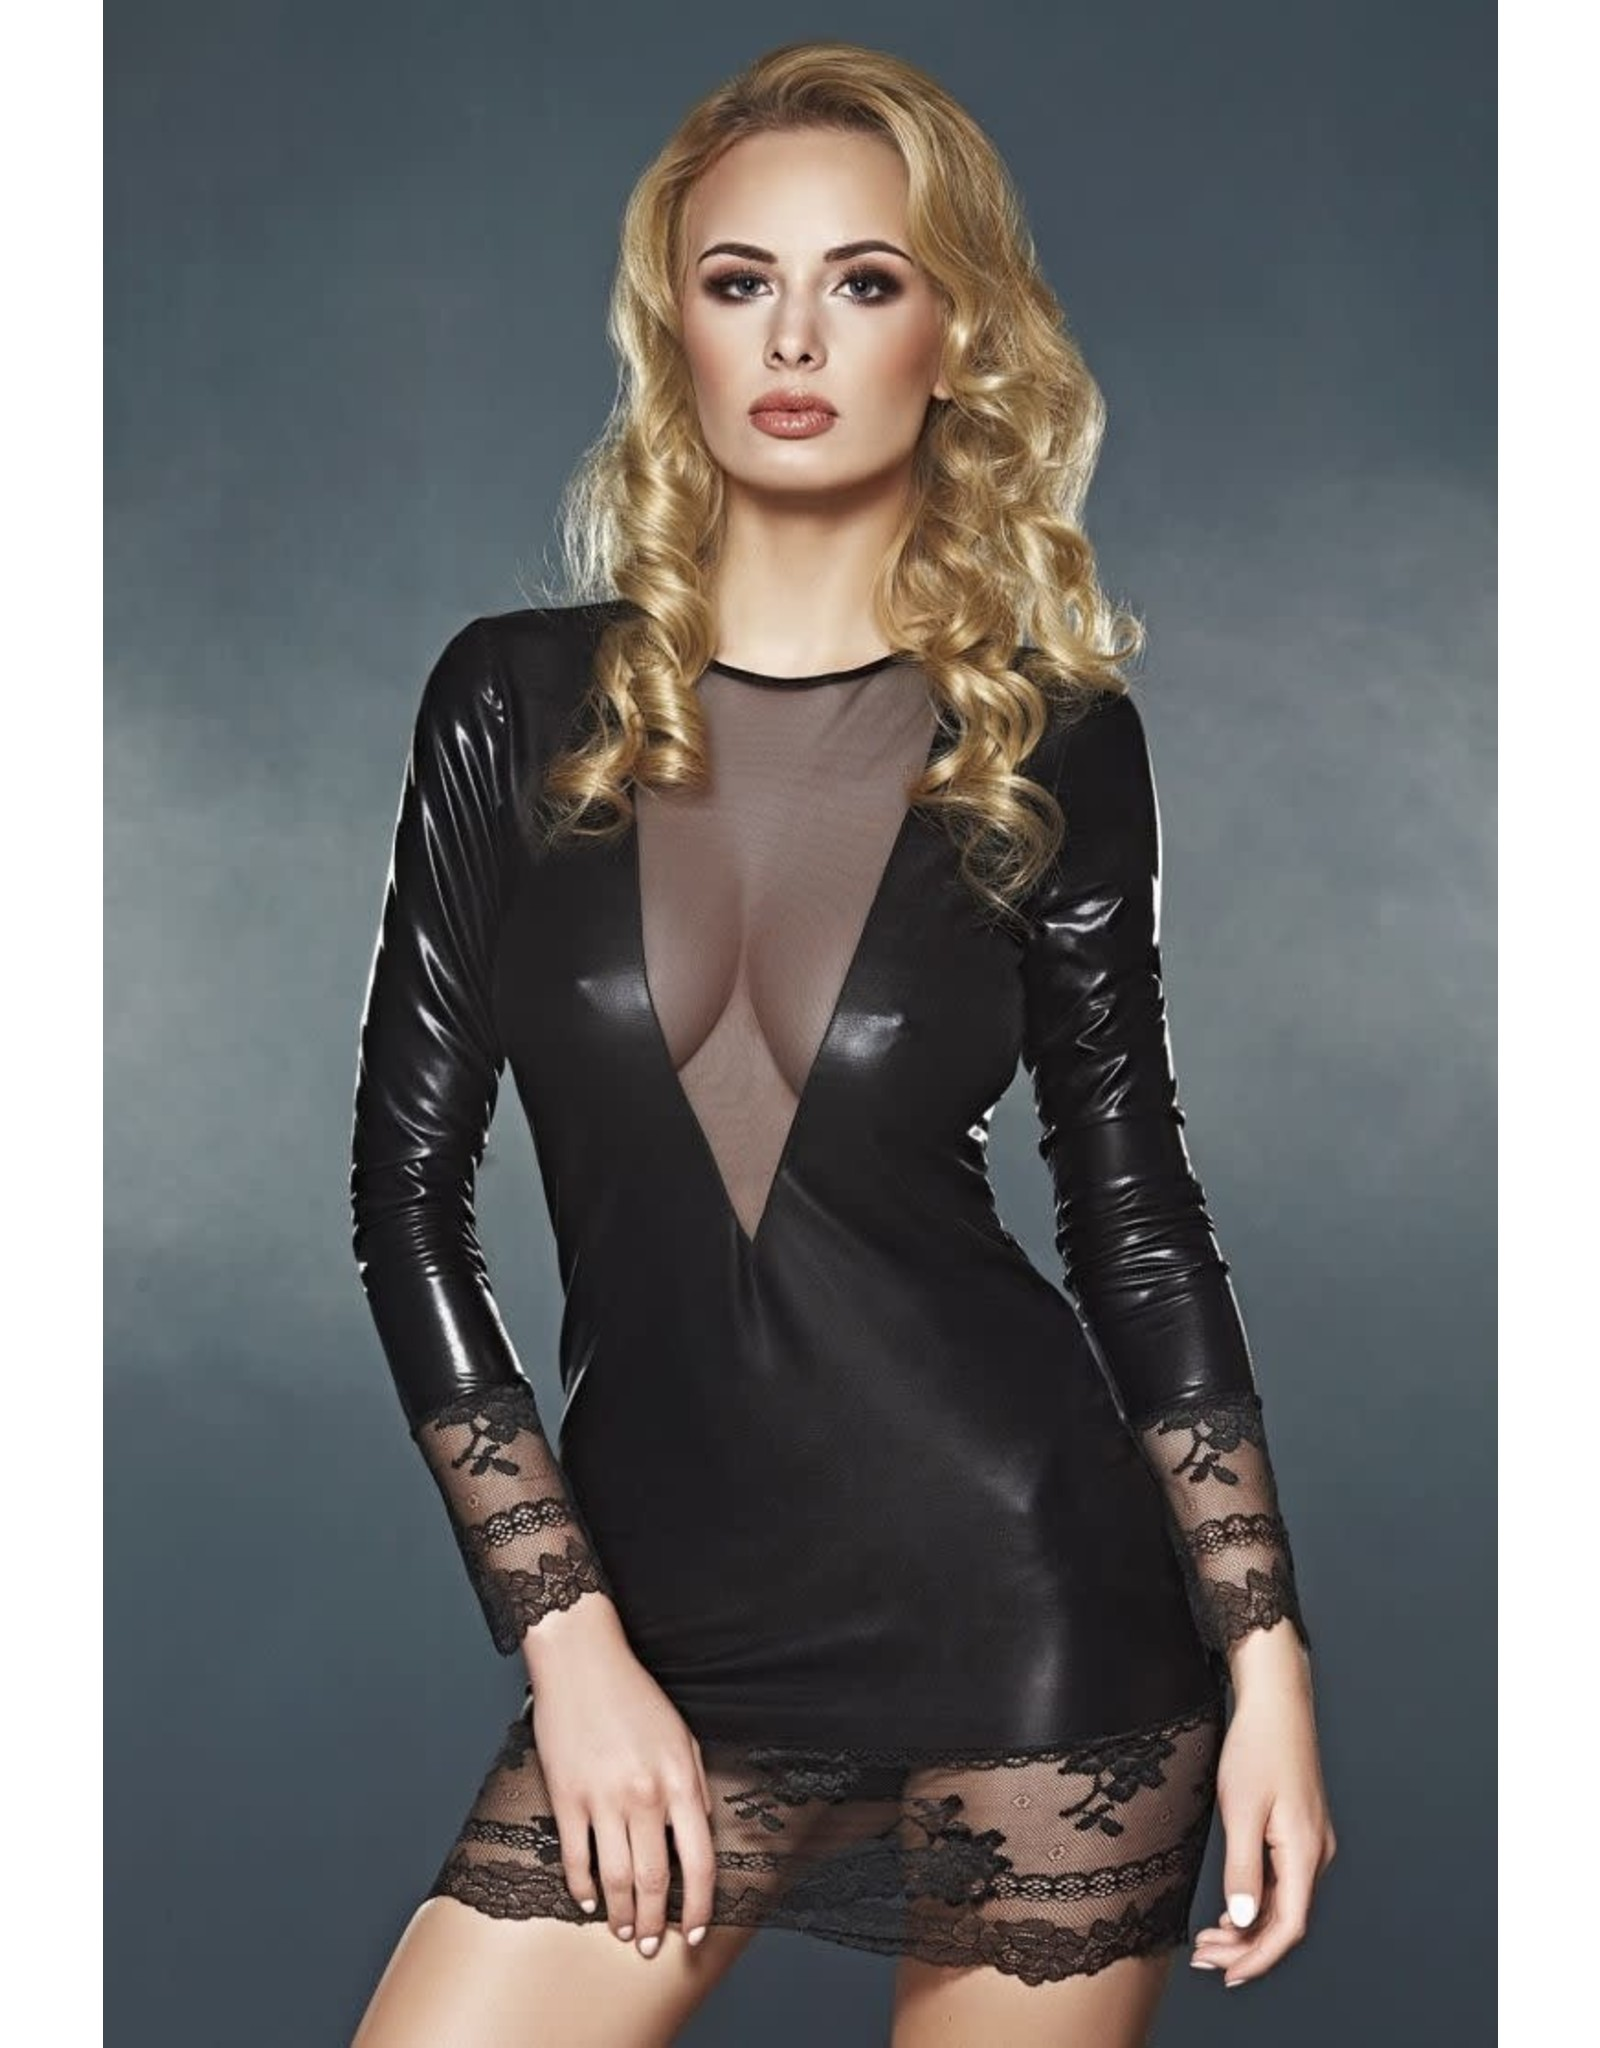 7 HEAVEN 7 HEAVEN - ELEGANT LONG SLEEVE WET LOOK DRESS WITH LACE AND TULLE DETAILS - 2XL